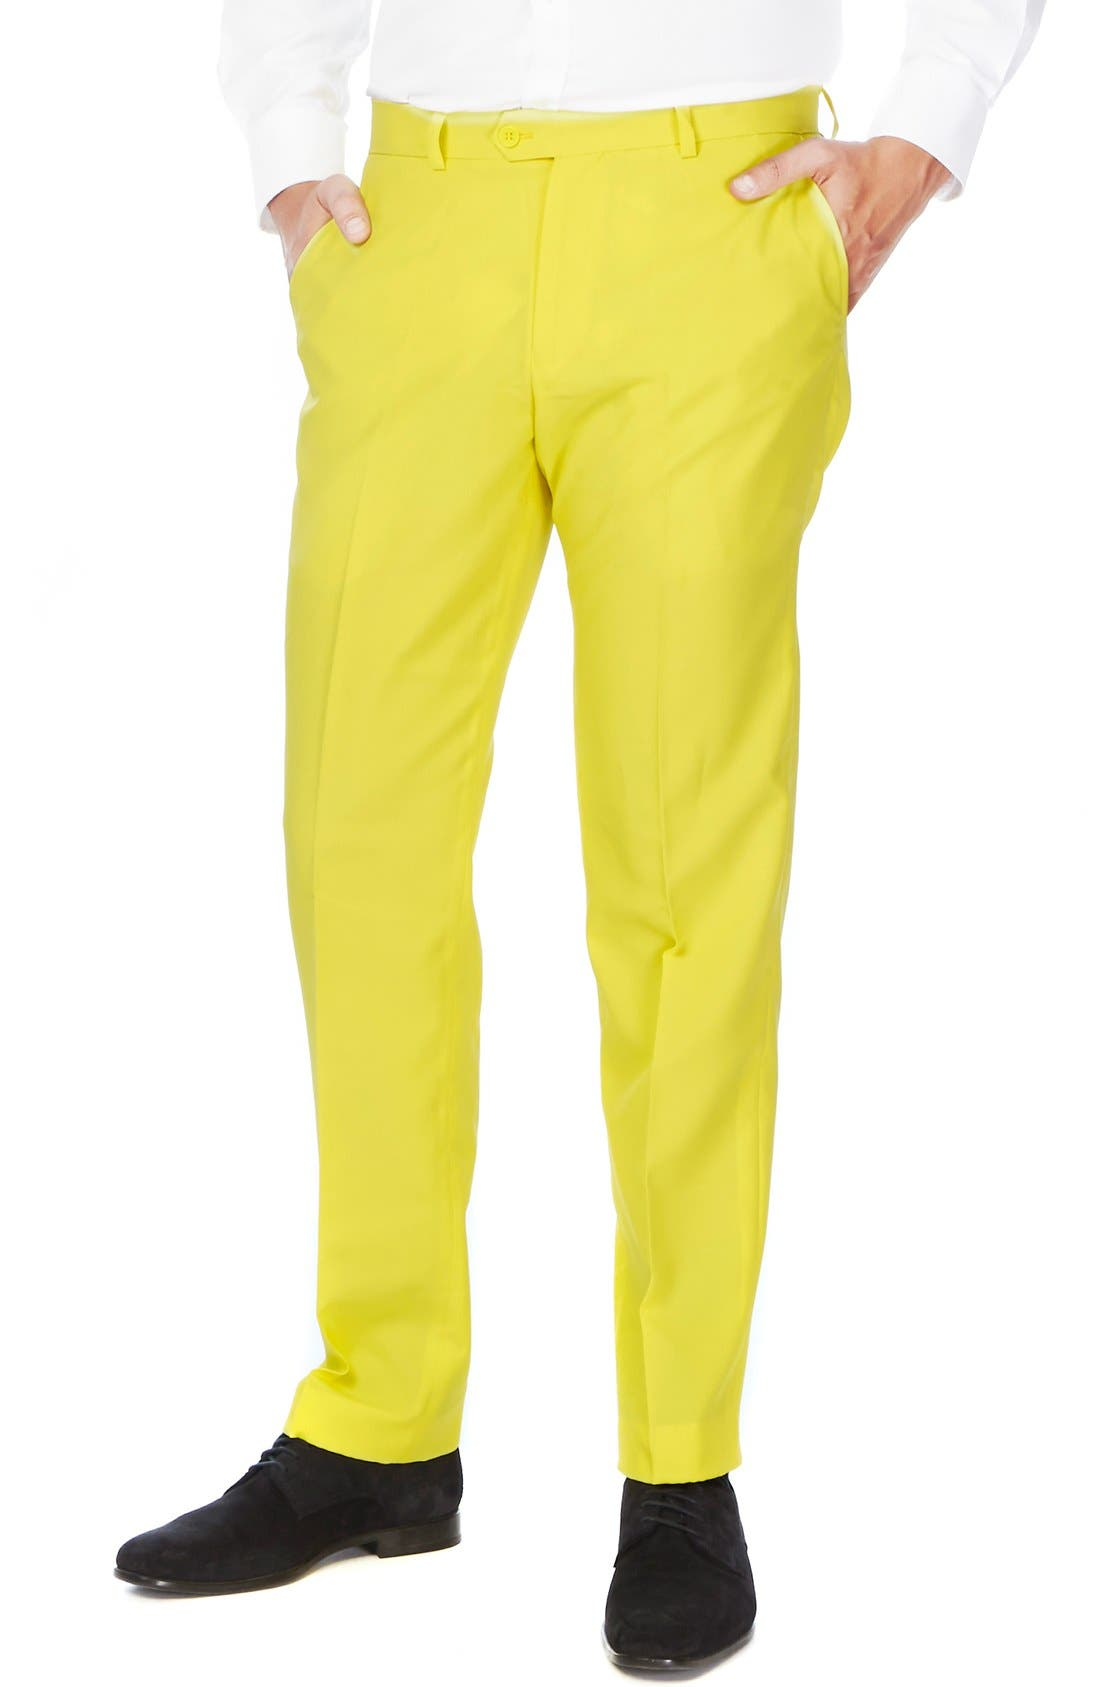 Alternate Image 3  - OppoSuits 'Yellow Fellow' Trim Fit Two-Piece Suit with Tie